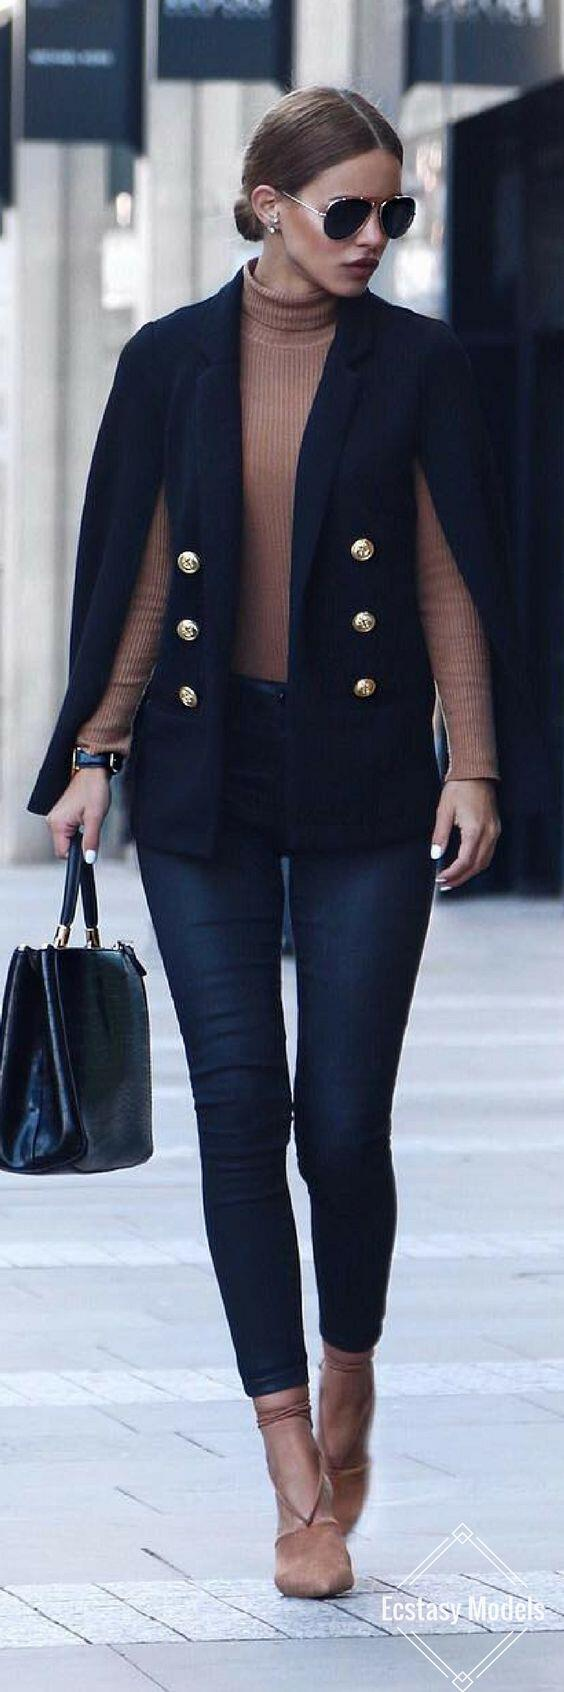 how to wear a cape outfit this fall 15 looks you can copy - How to wear a cape outfit this fall -15 looks you can copy